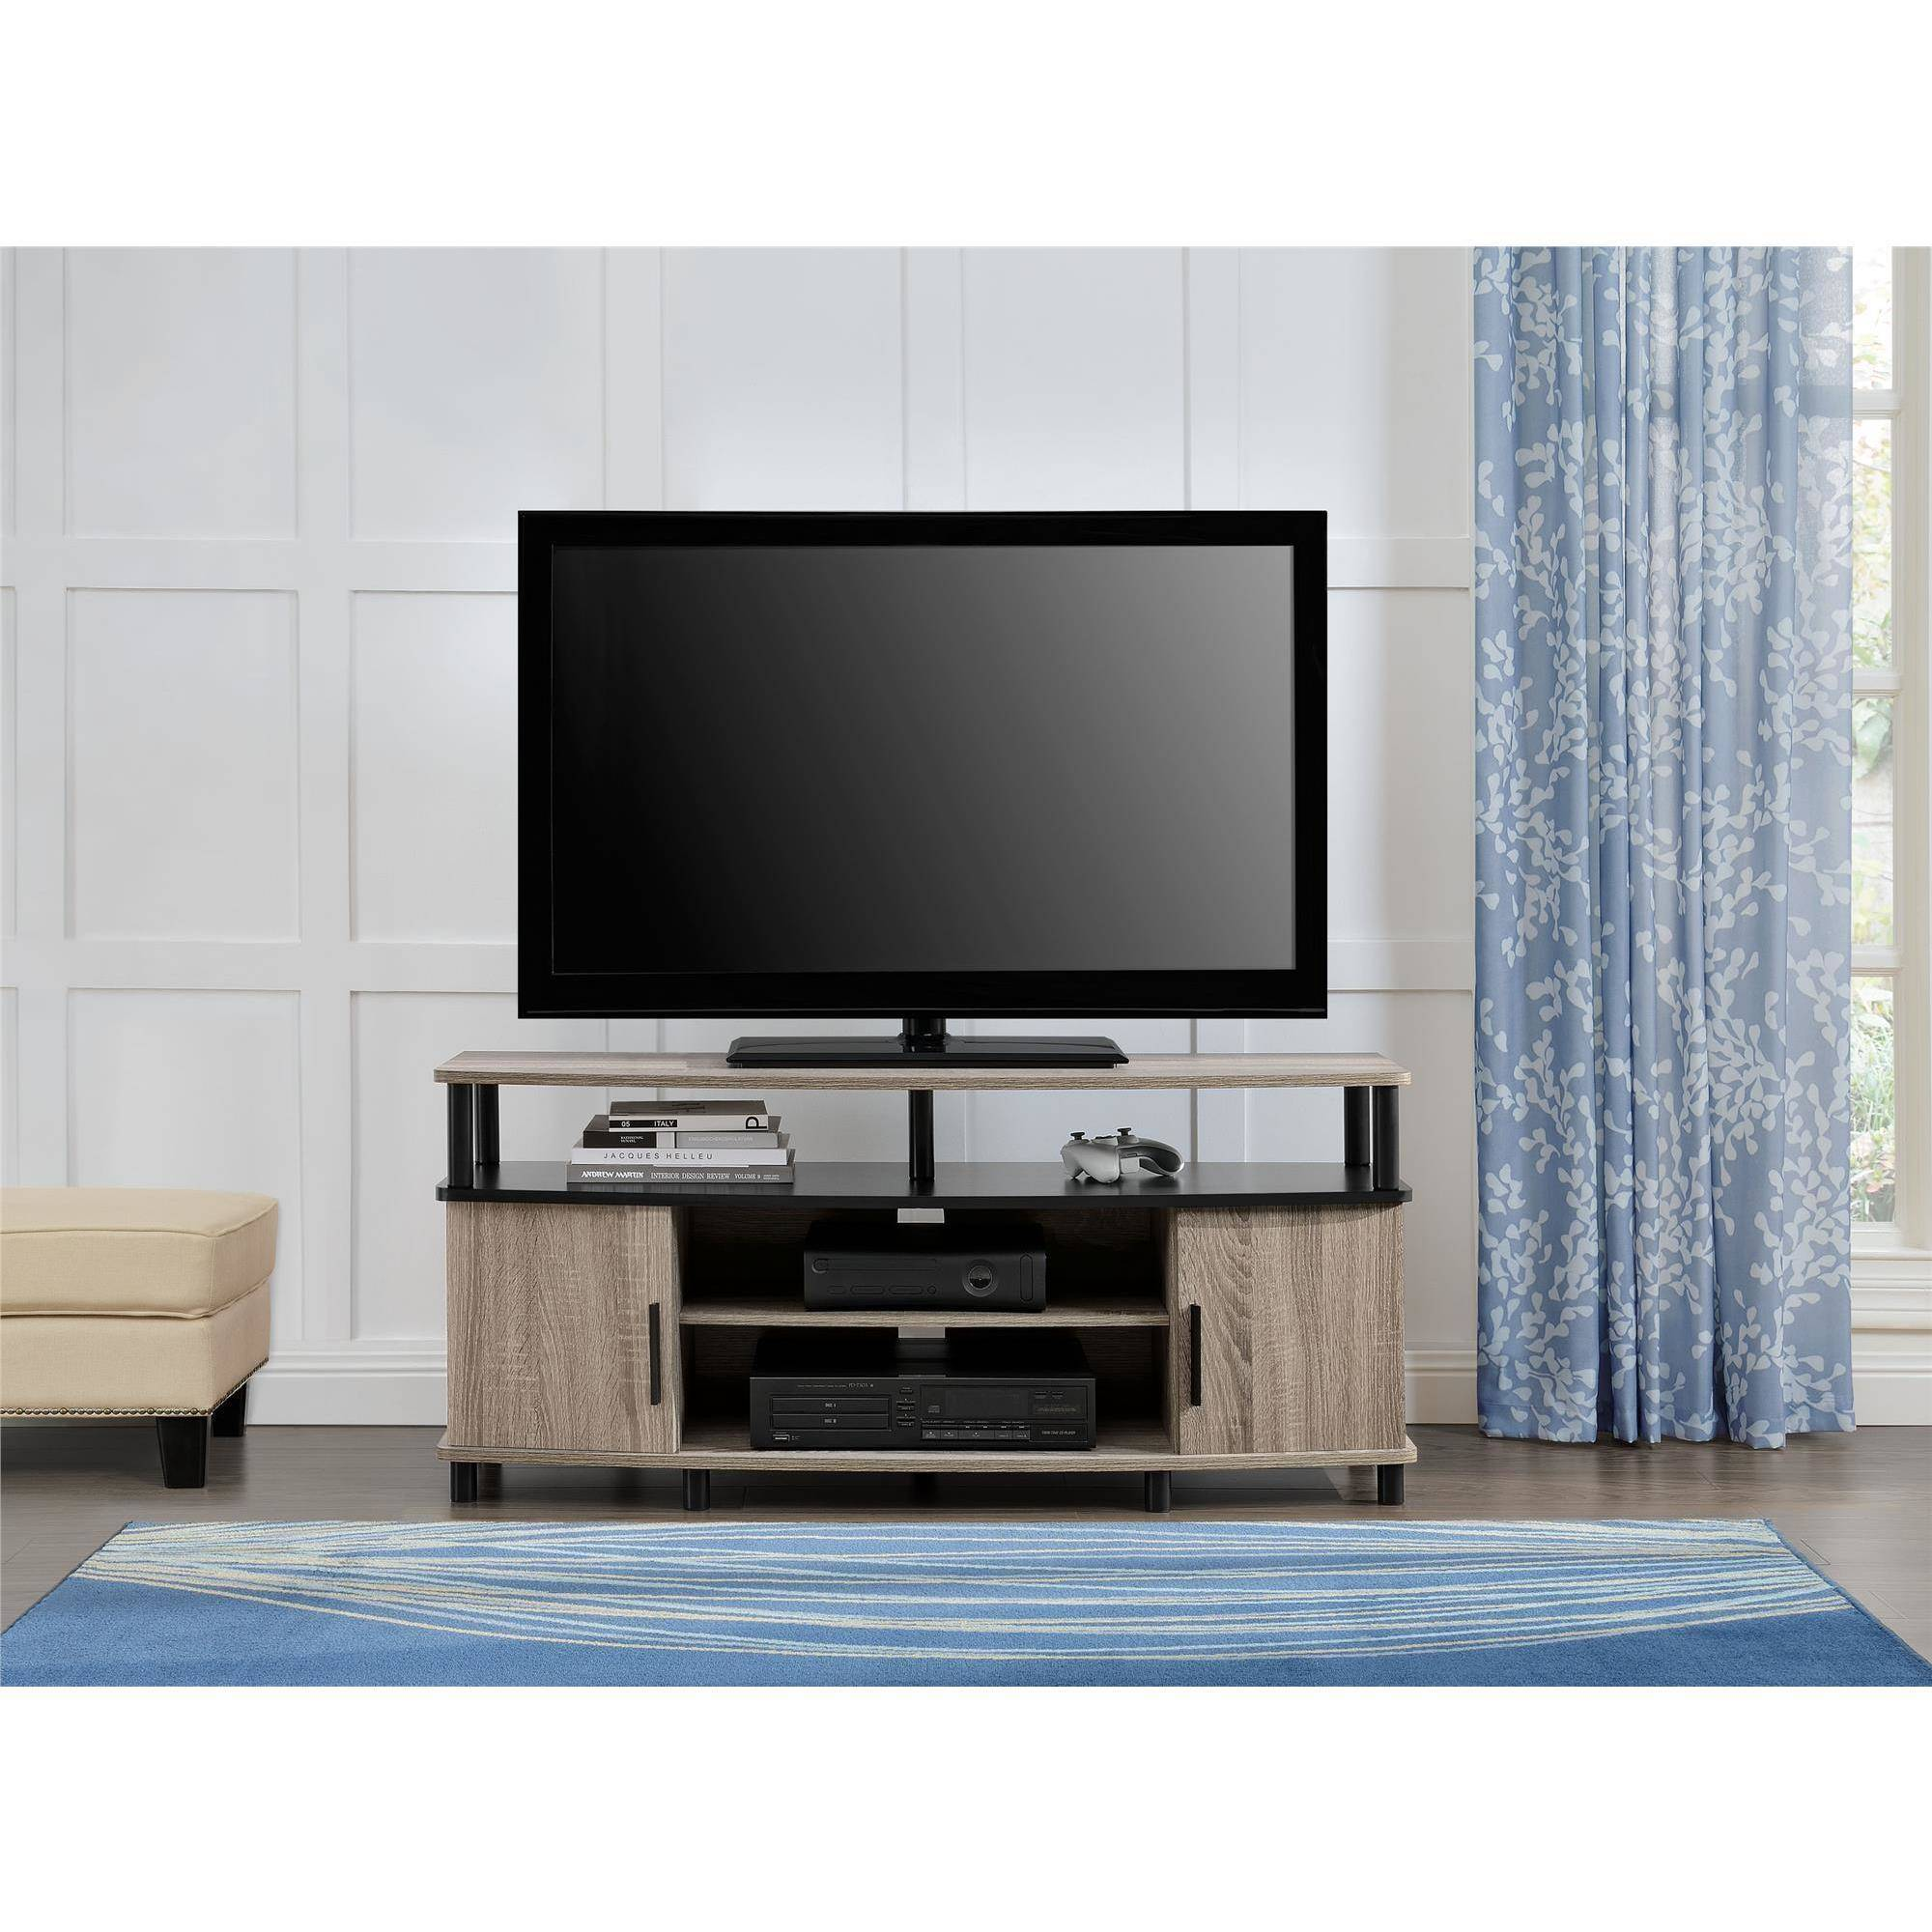 "TV Stand Oak Carson Sonoma For TVs Up To 50"" Living Room"